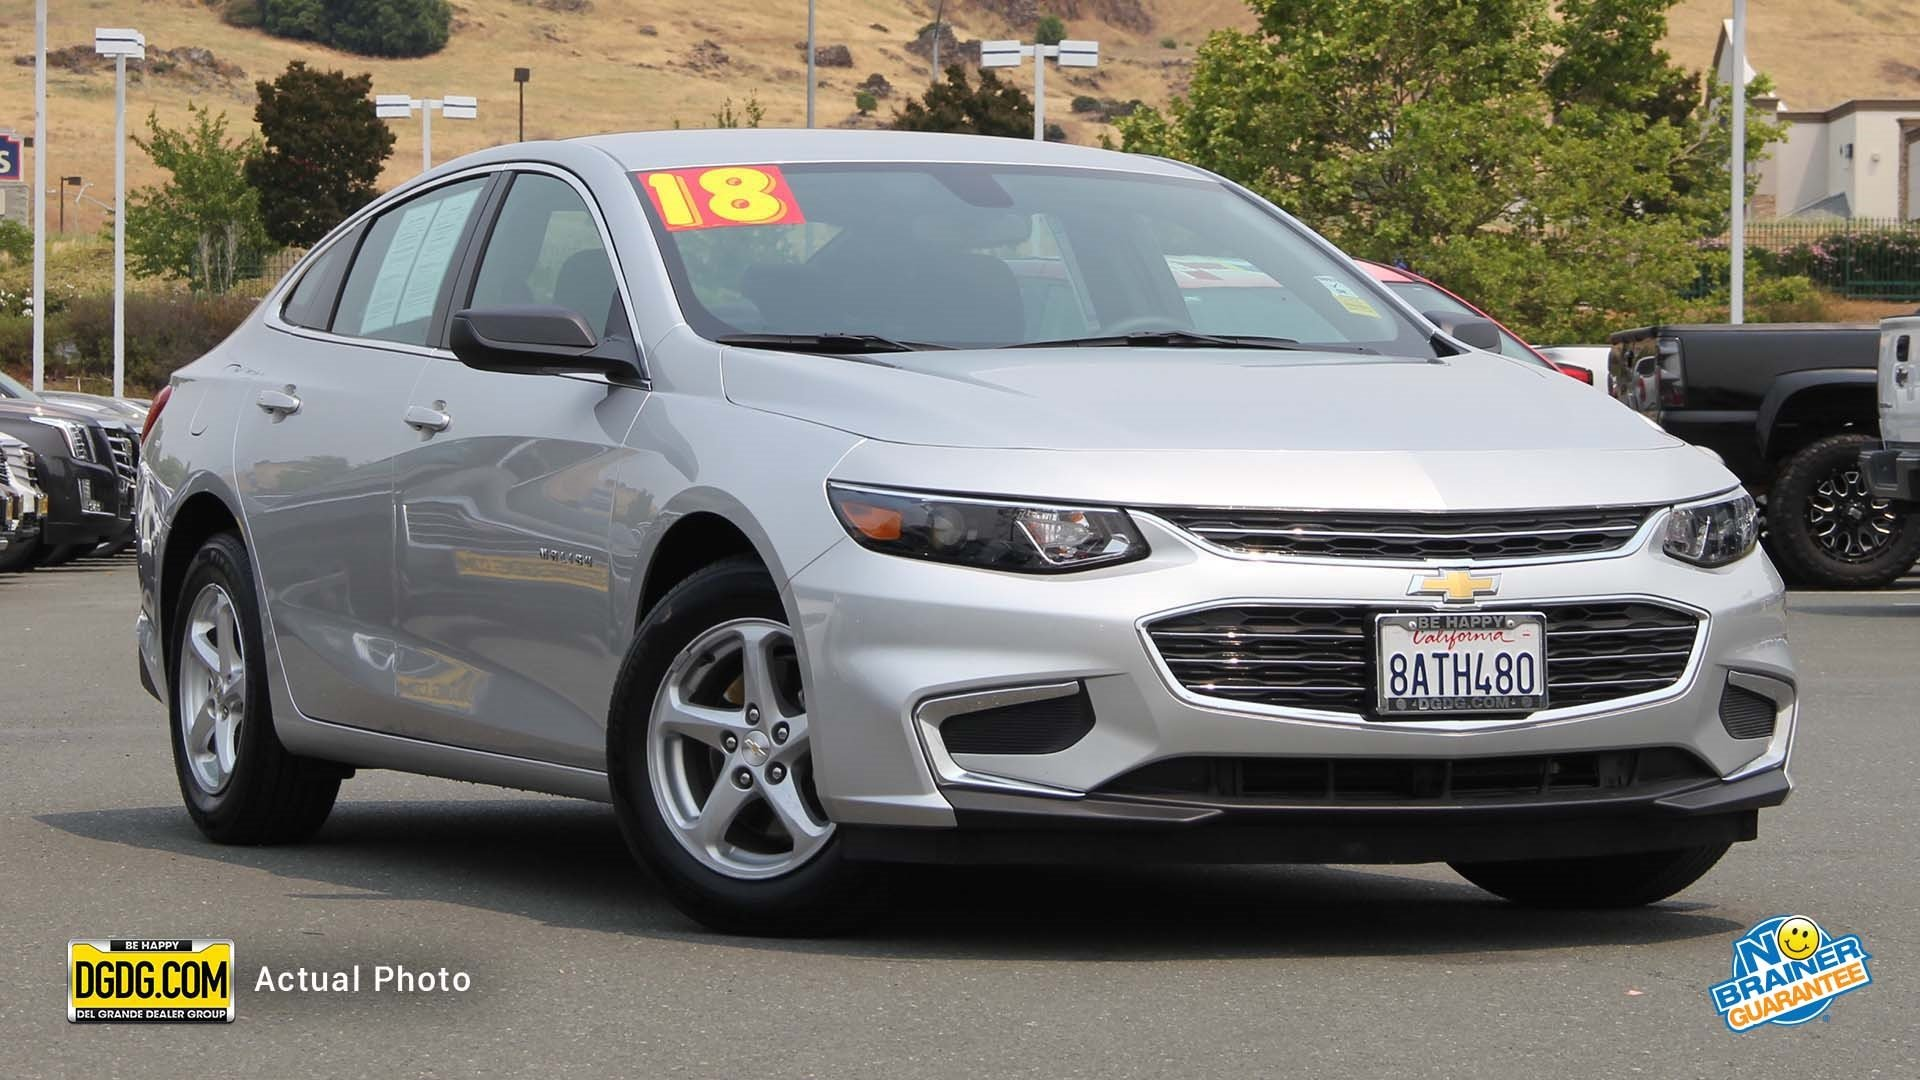 Pre Owned 2018 Chevrolet Malibu LS 4dr Car in Vallejo UT1157X